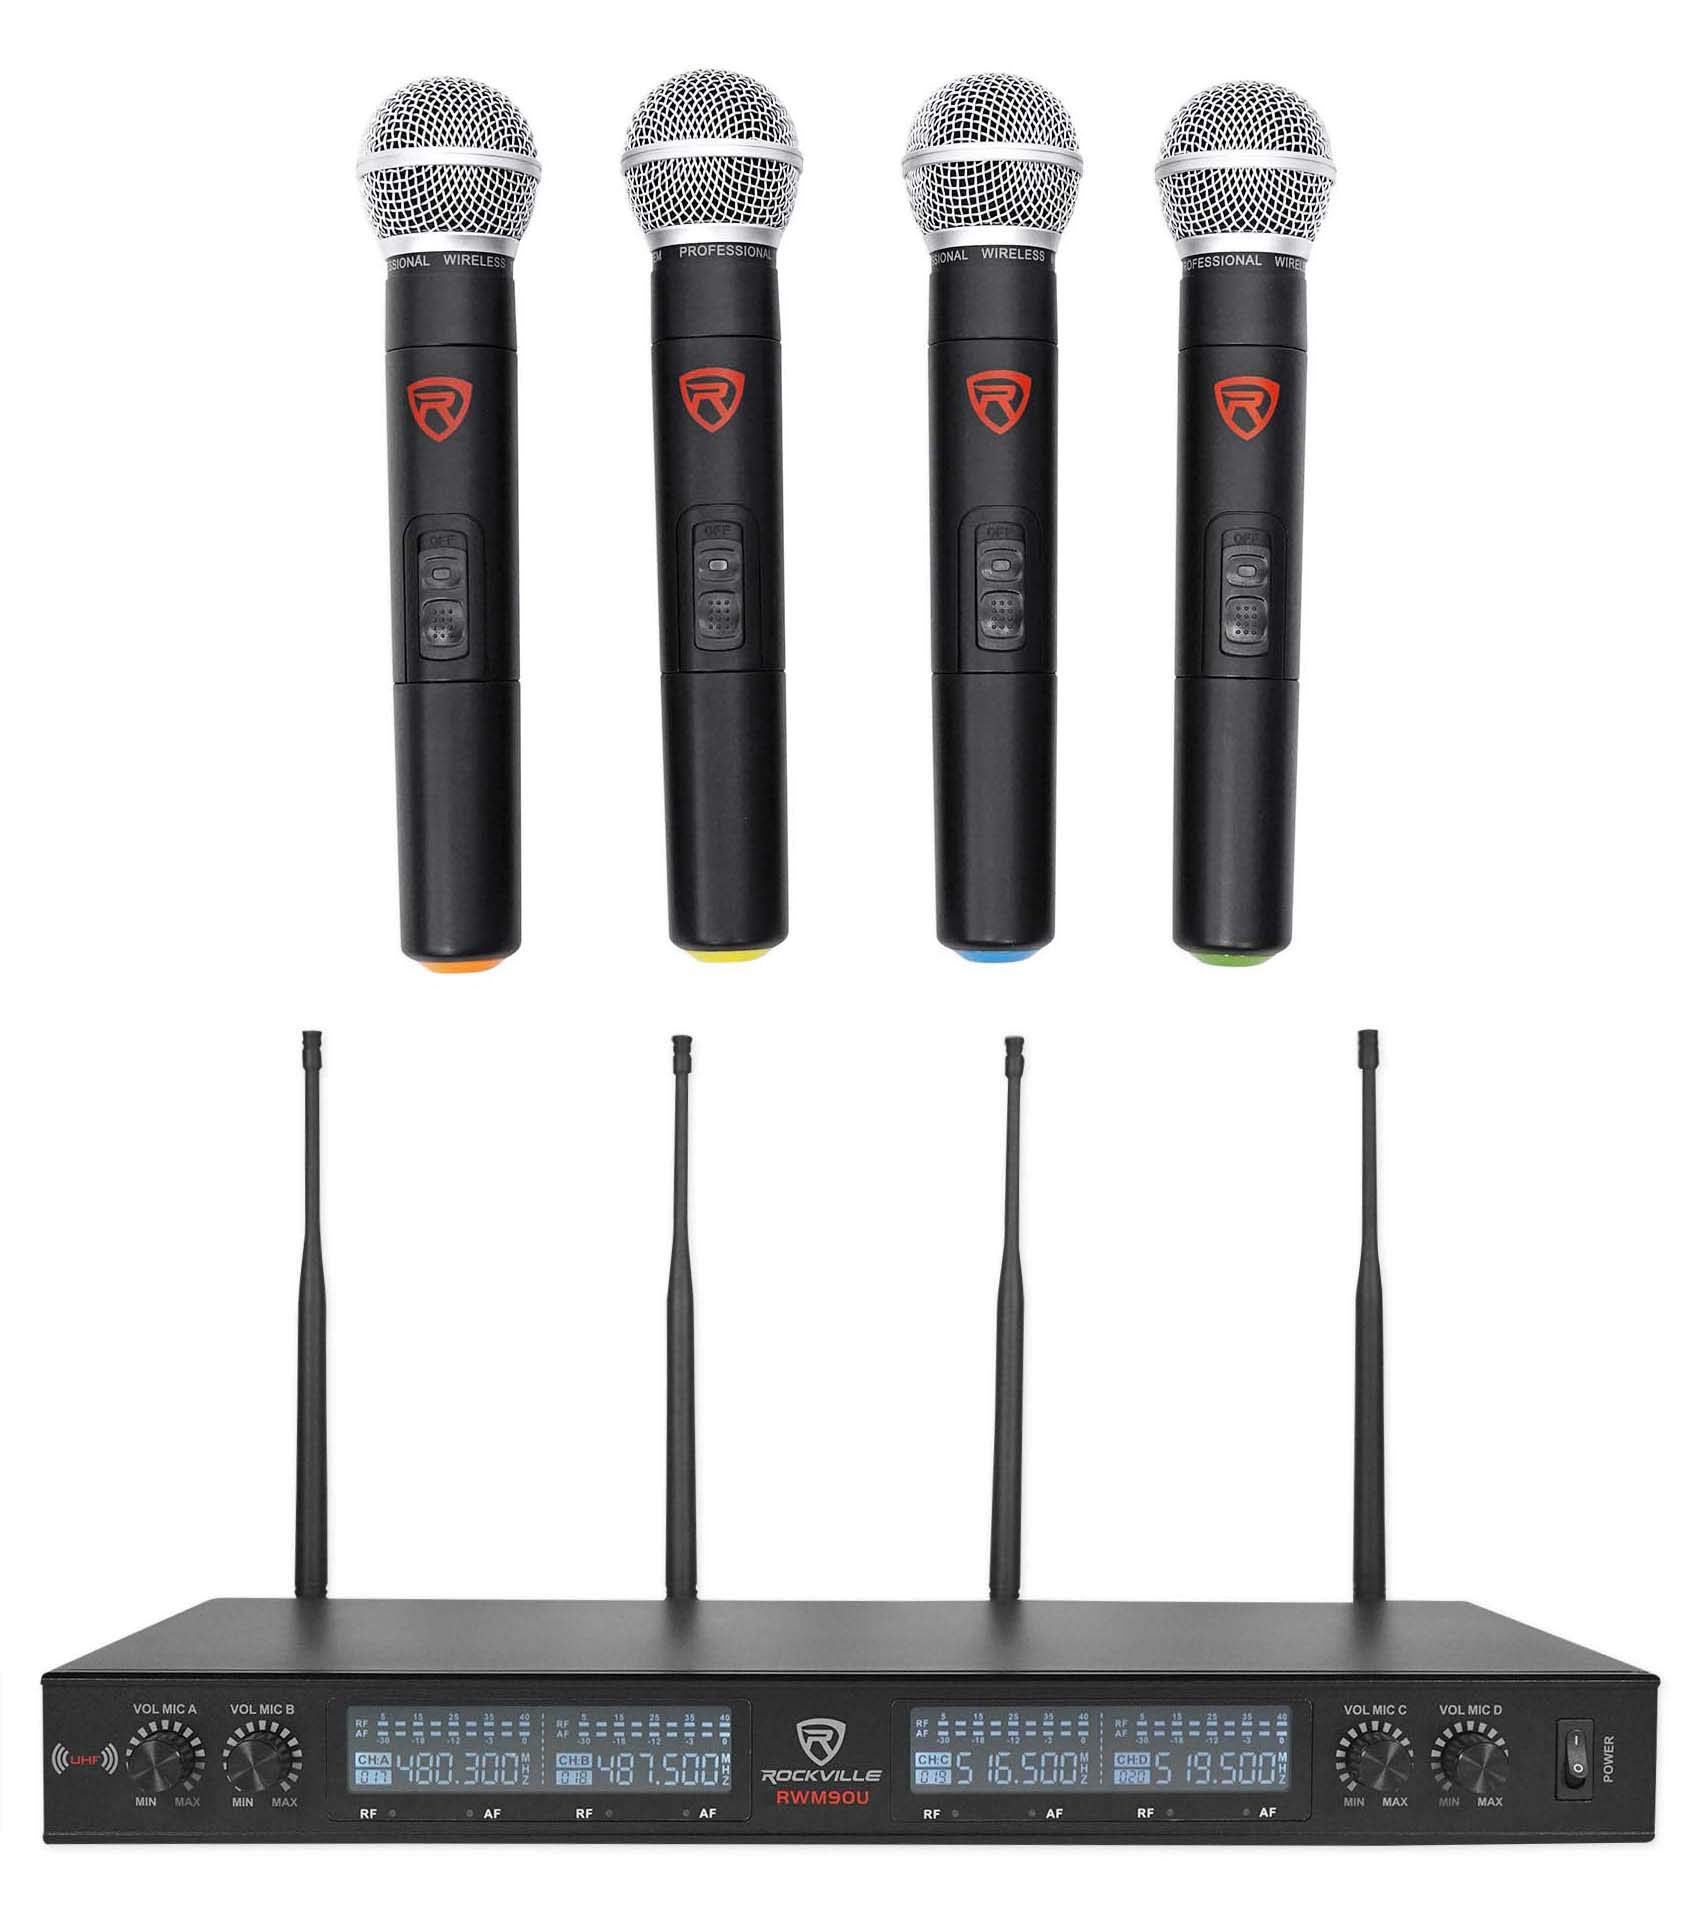 Rockville Quad UHF Handheld Wireless Microphone System w/LCD+Metal Casing rwm90u by Rockville